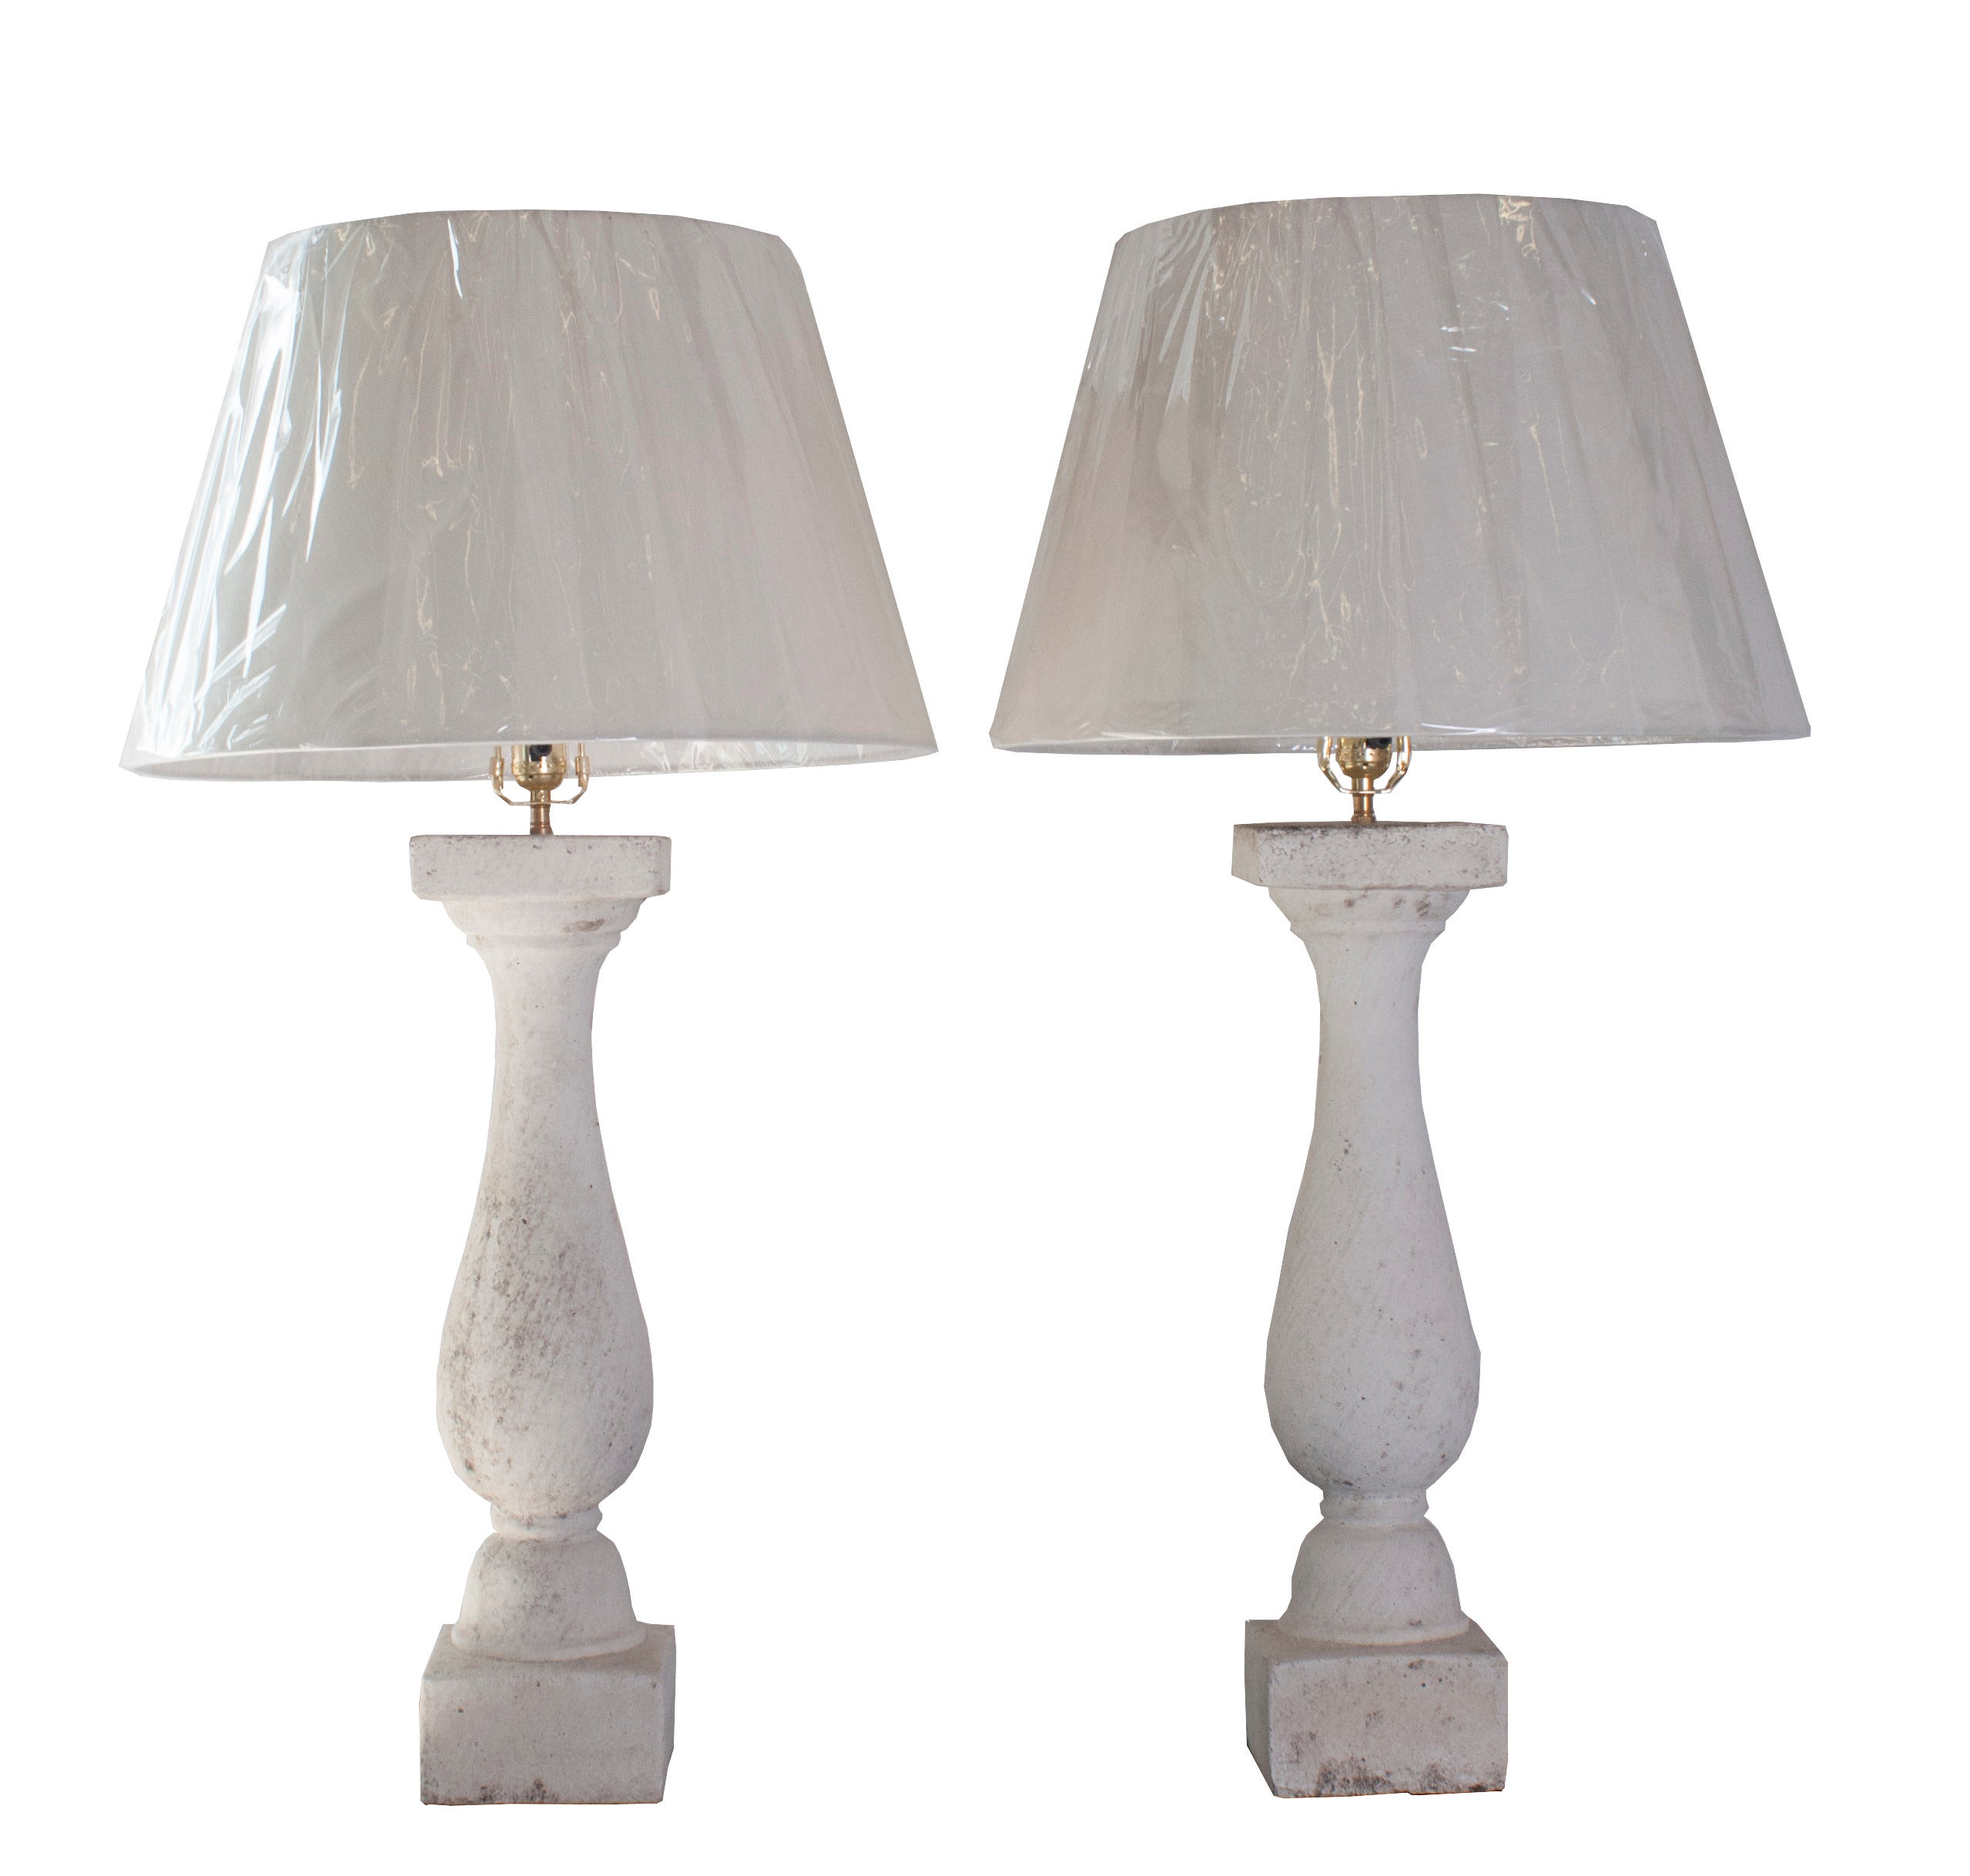 Pair of Composite Stone Baluster Table Lamps with Lichen